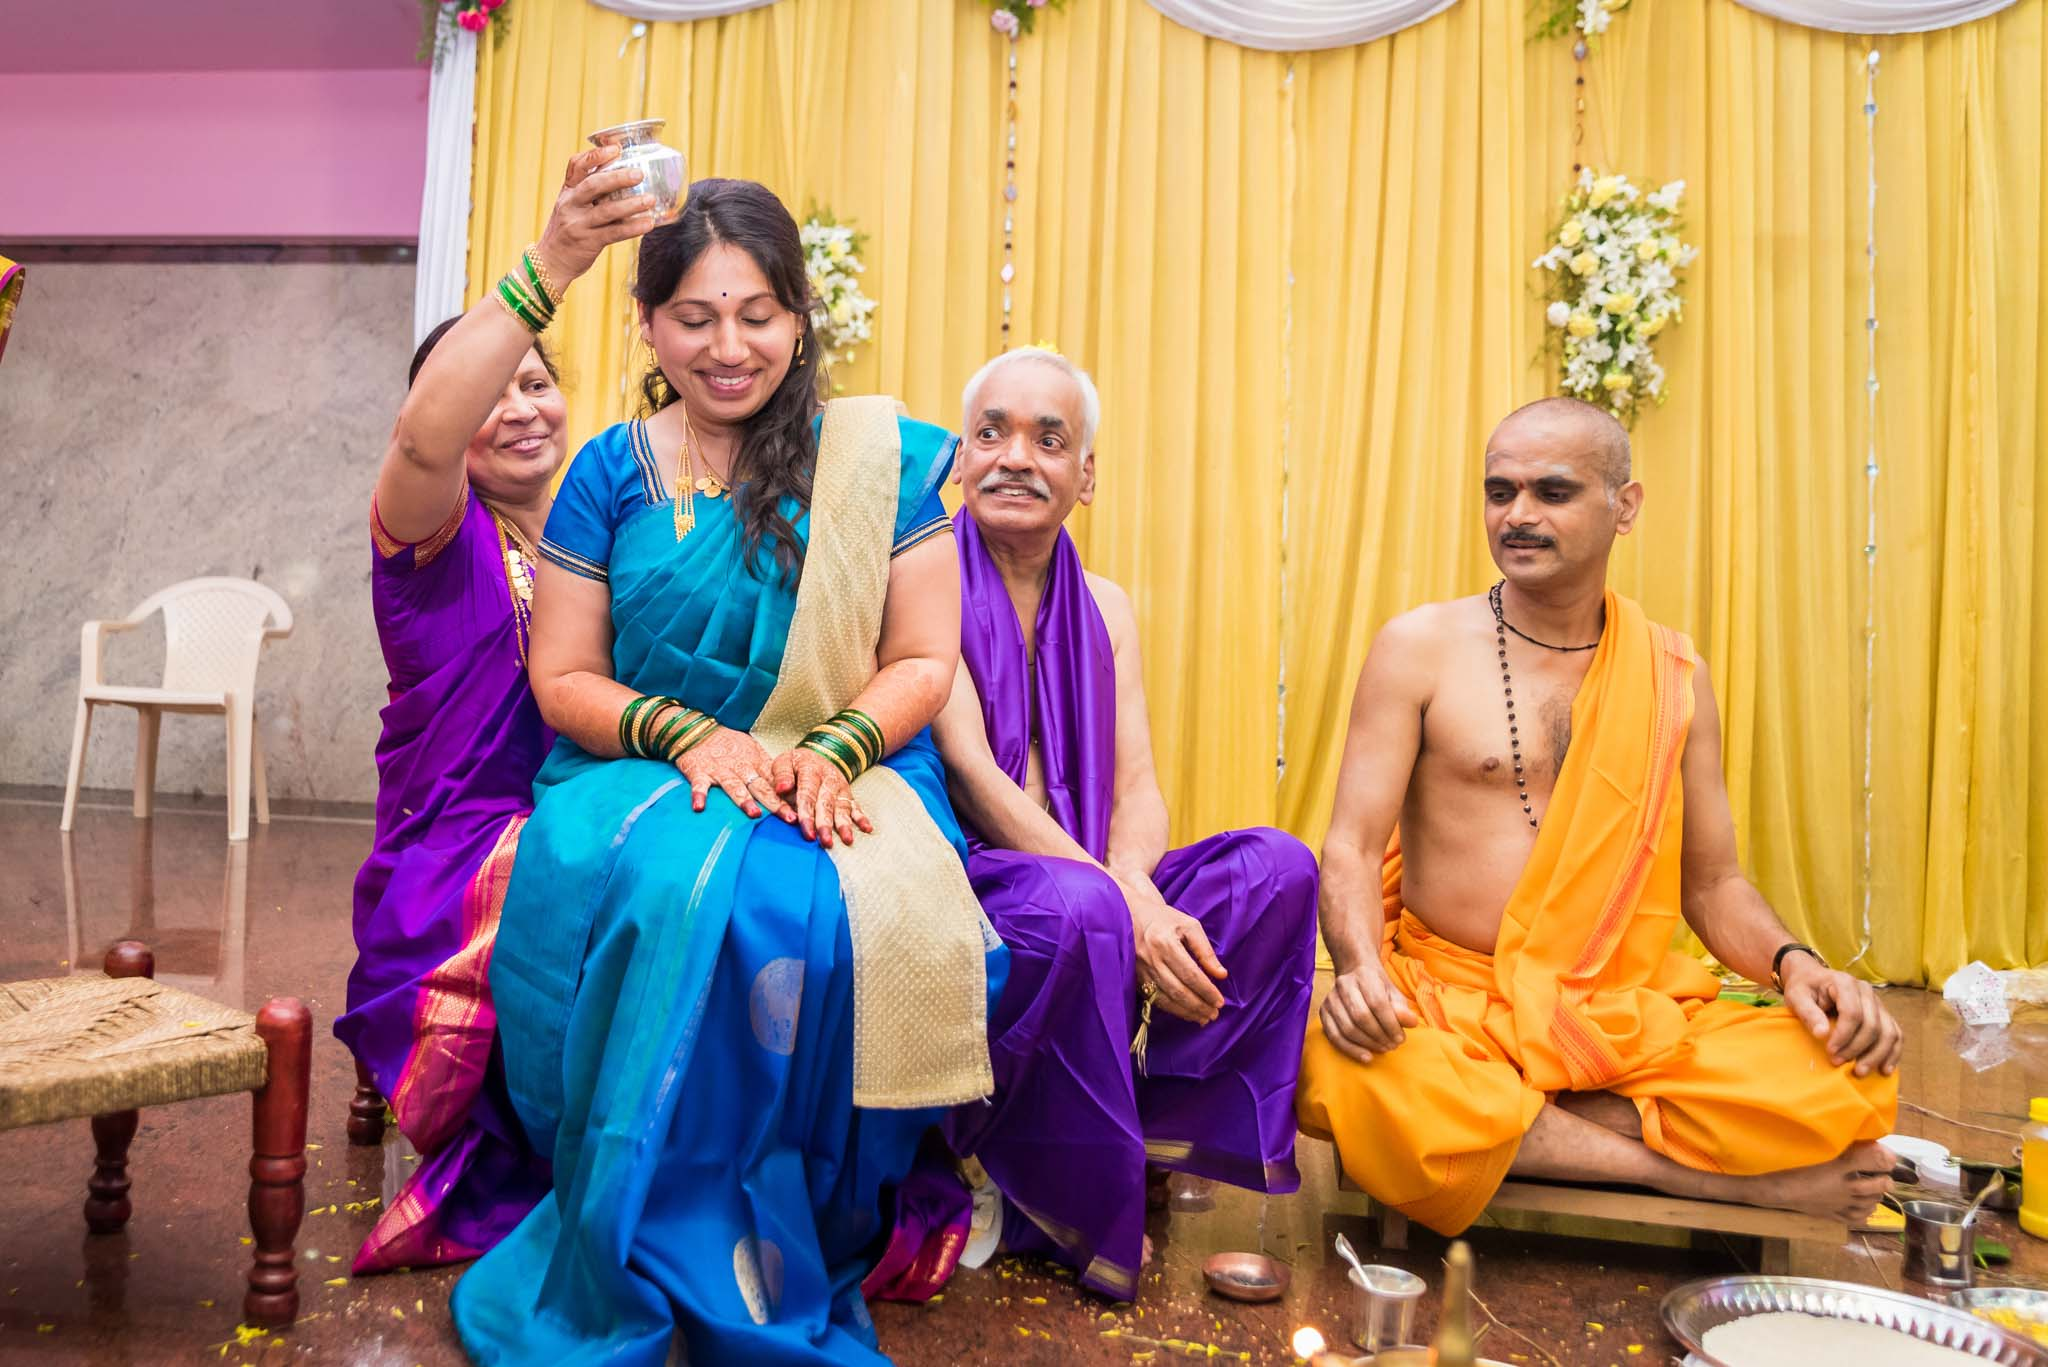 WhatKnot-Candid-Wedding-Photography-Mumbai-Bangalore-70